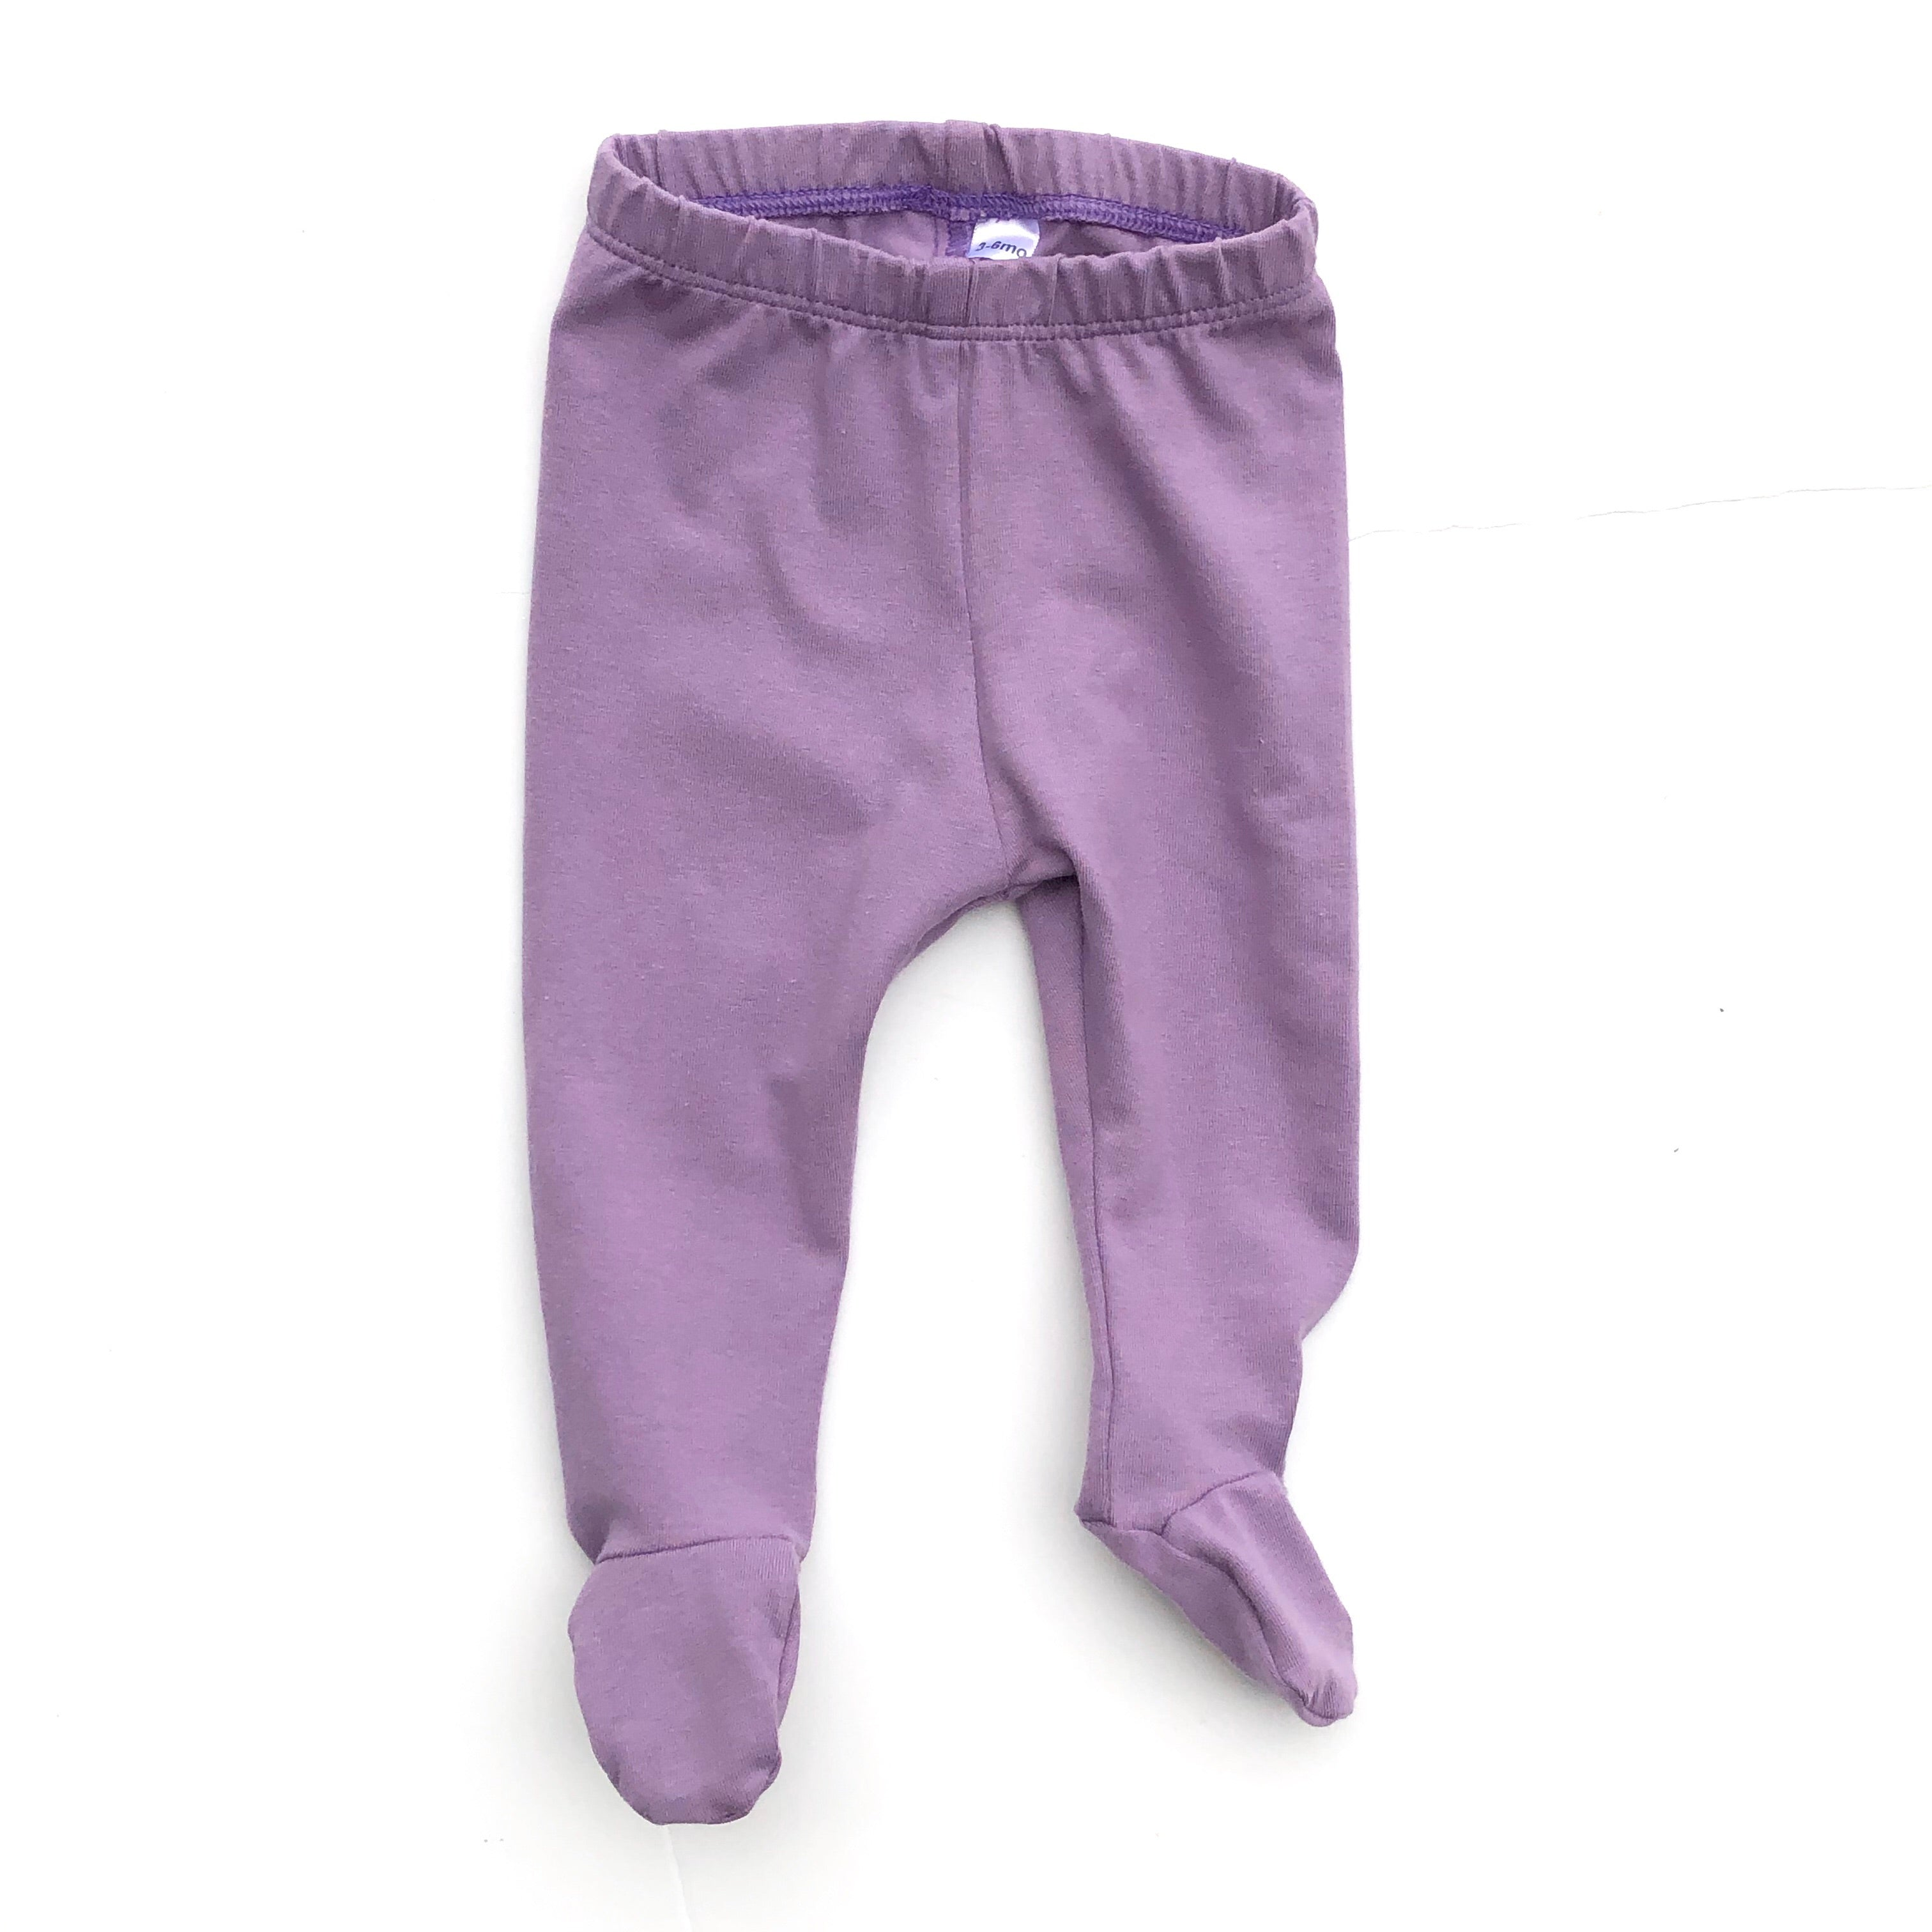 Dark Lavender Footed Pants